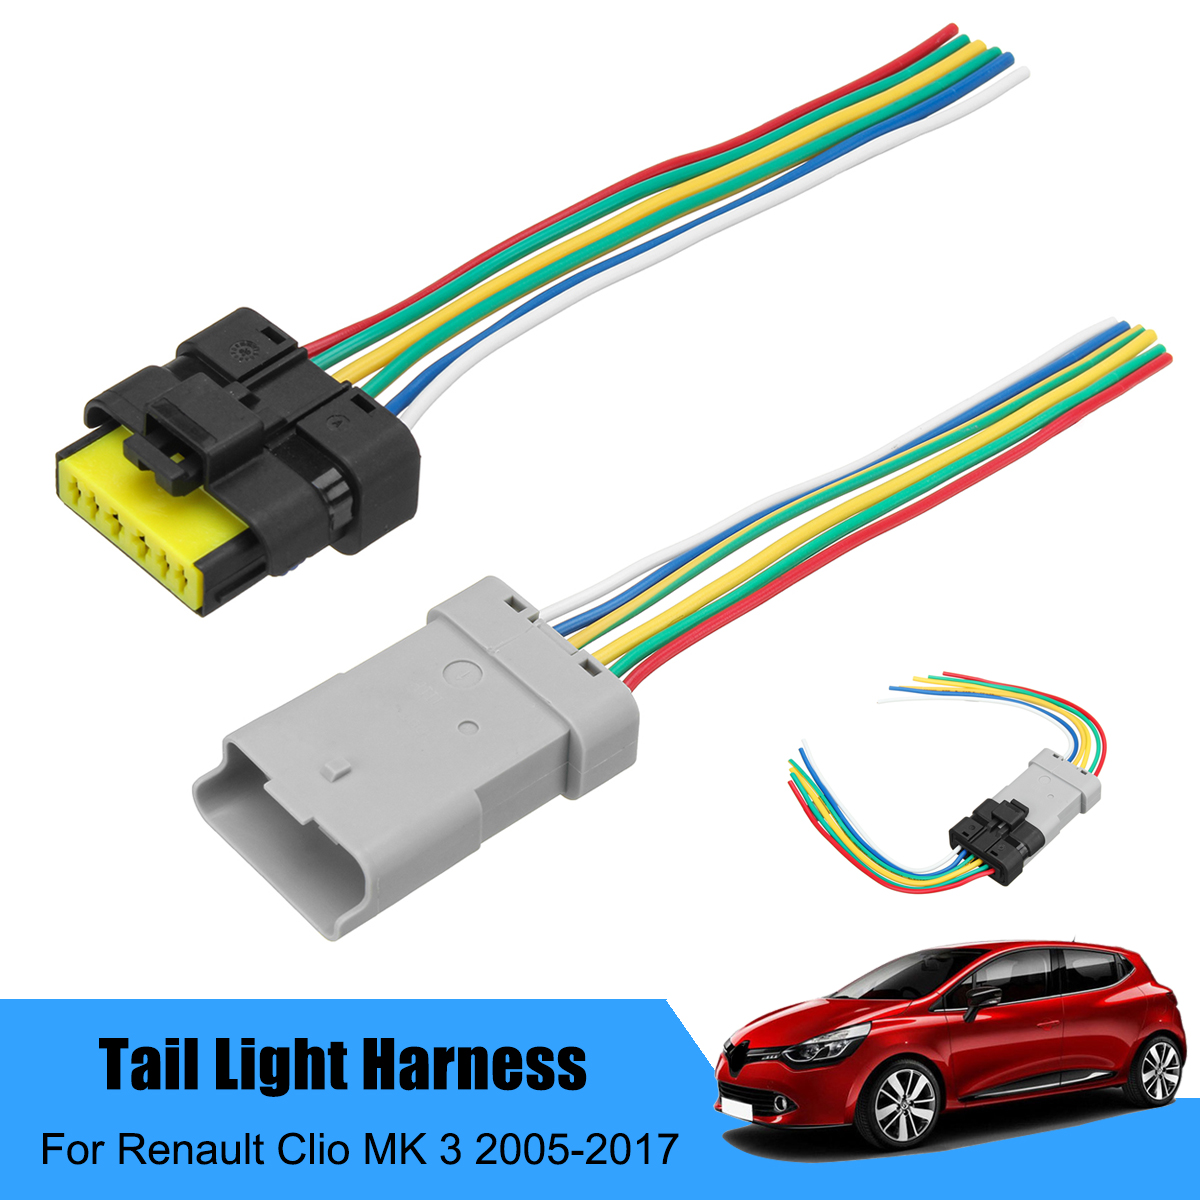 car rear tail light loom harness pigtail adapter for renault clio mk 3 2005 2017 [ 1200 x 1200 Pixel ]